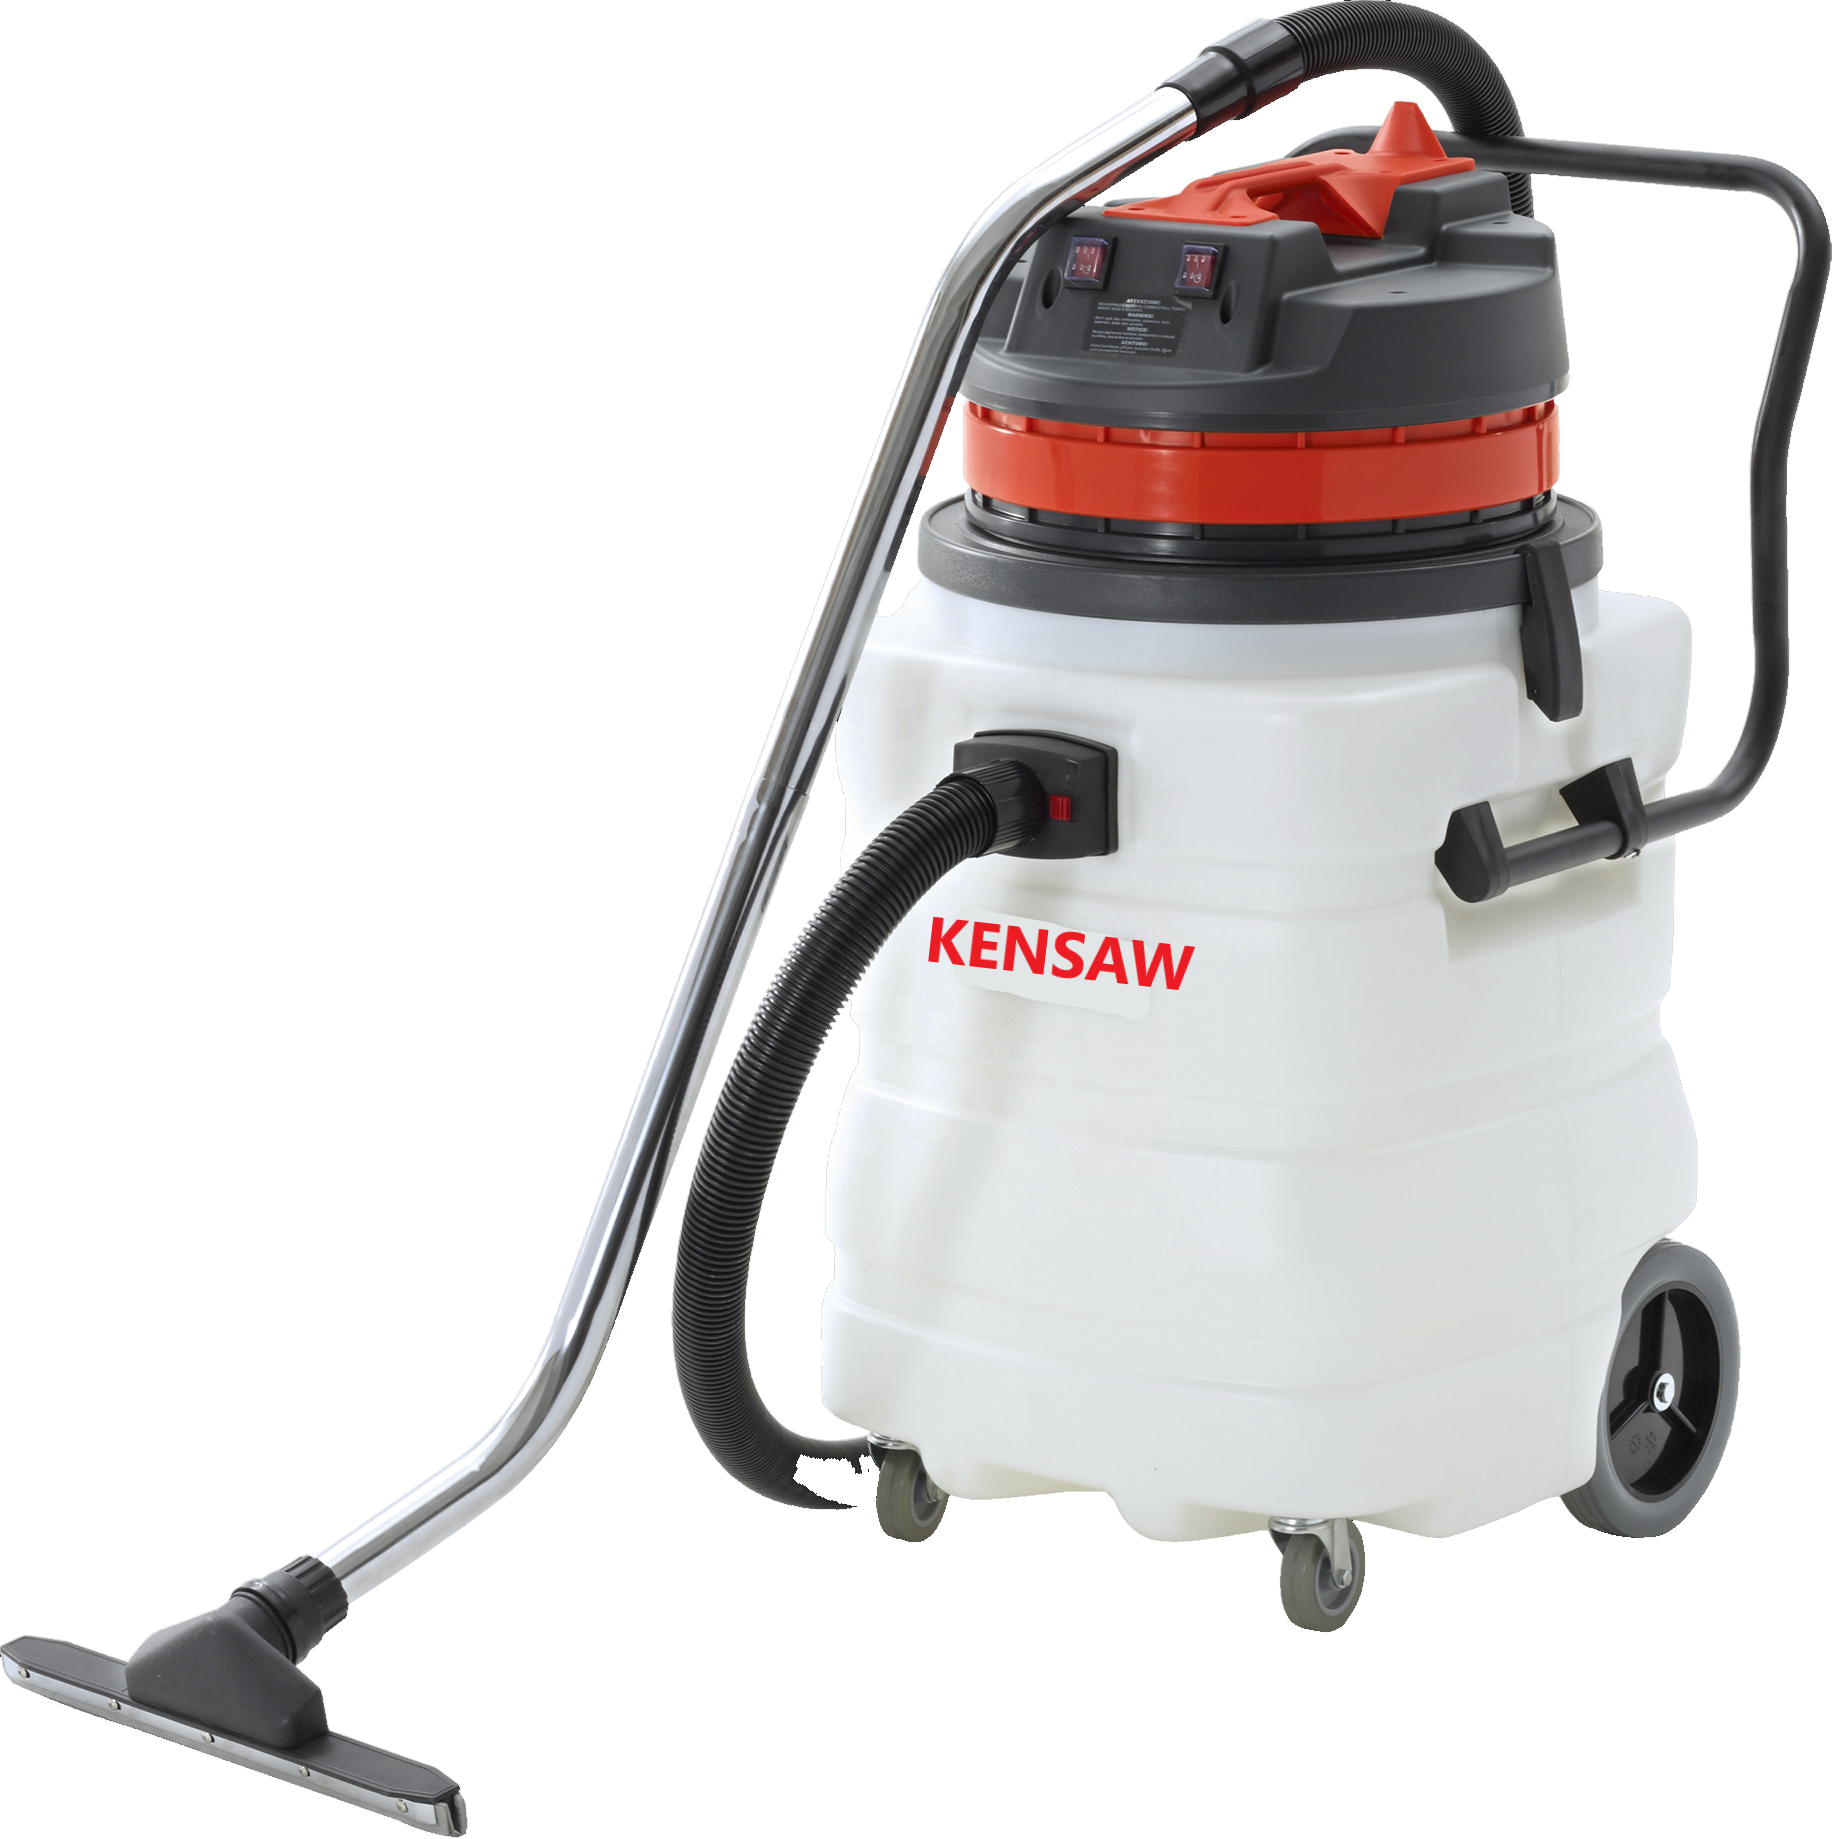 Kensaw Industrial Wet and Dry Vacuum 230v